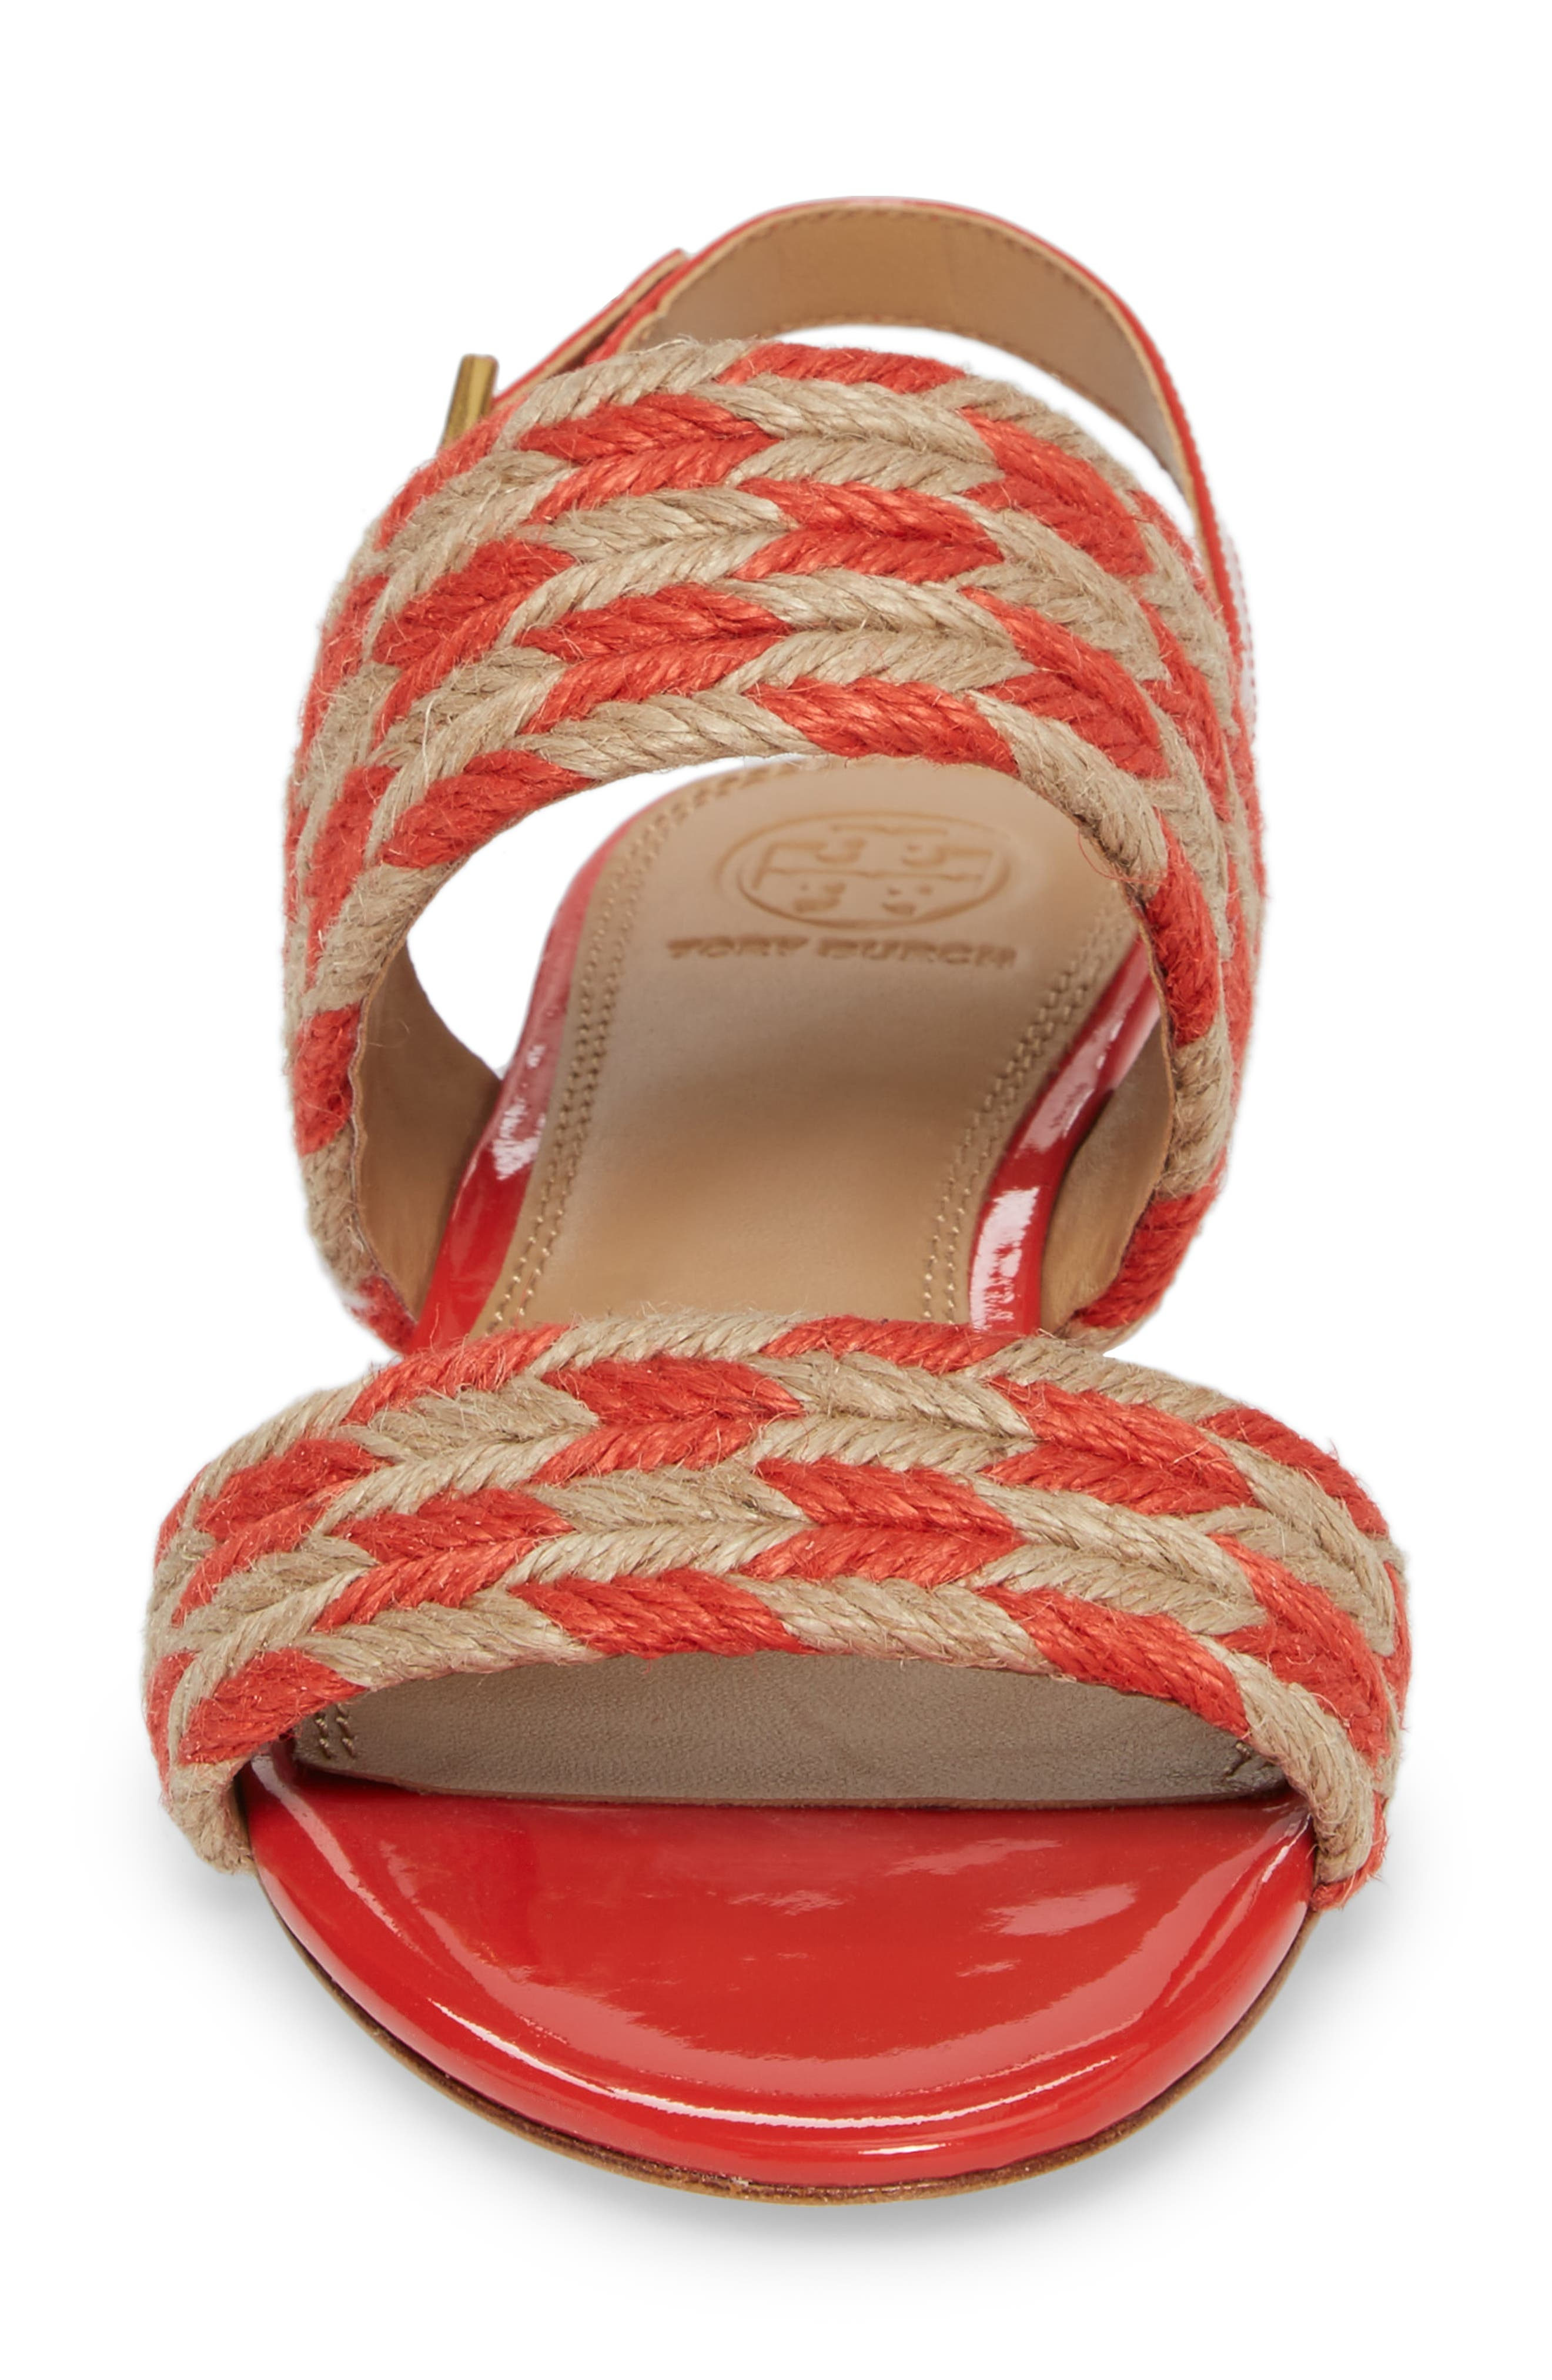 Lola Slingback Sandal,                             Alternate thumbnail 4, color,                             Poppy Orange/ Perfect Ivory